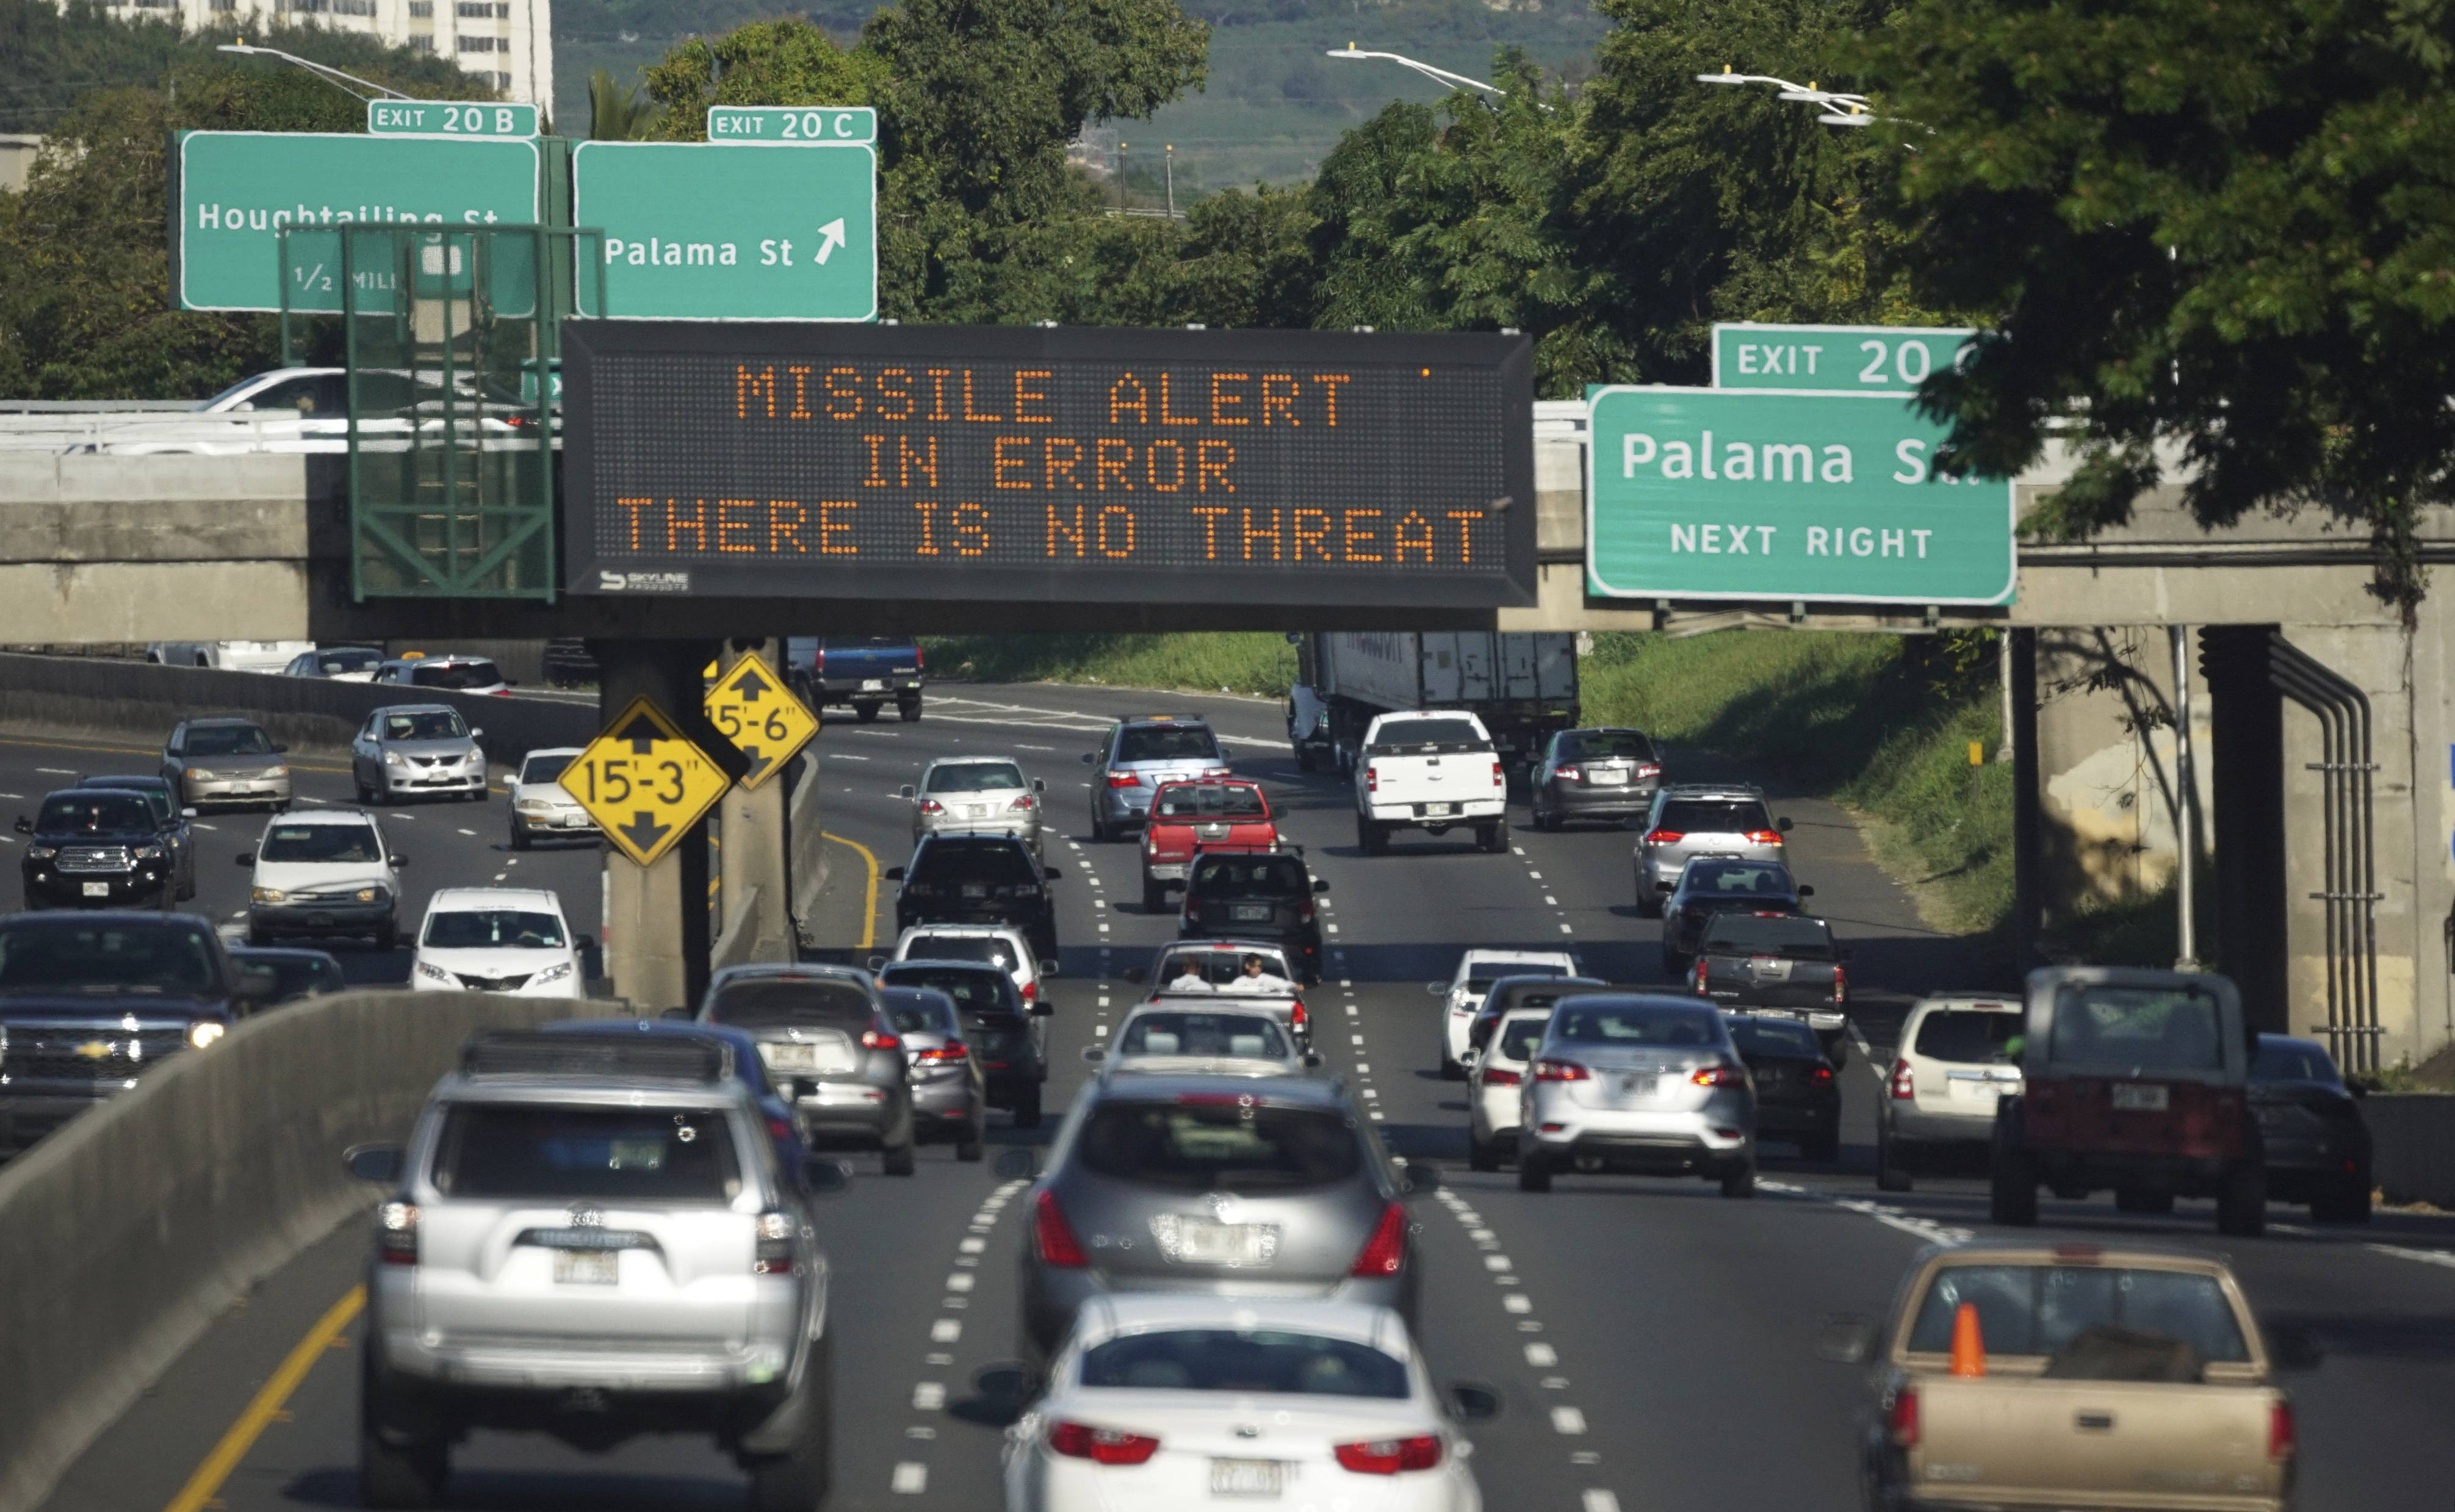 Cars drive past a highway sign canceling a missile threat in Hawaii. State emergency officials said human error caused a statewide announcement of an incoming missile strike alert that was sent to mobile phones.